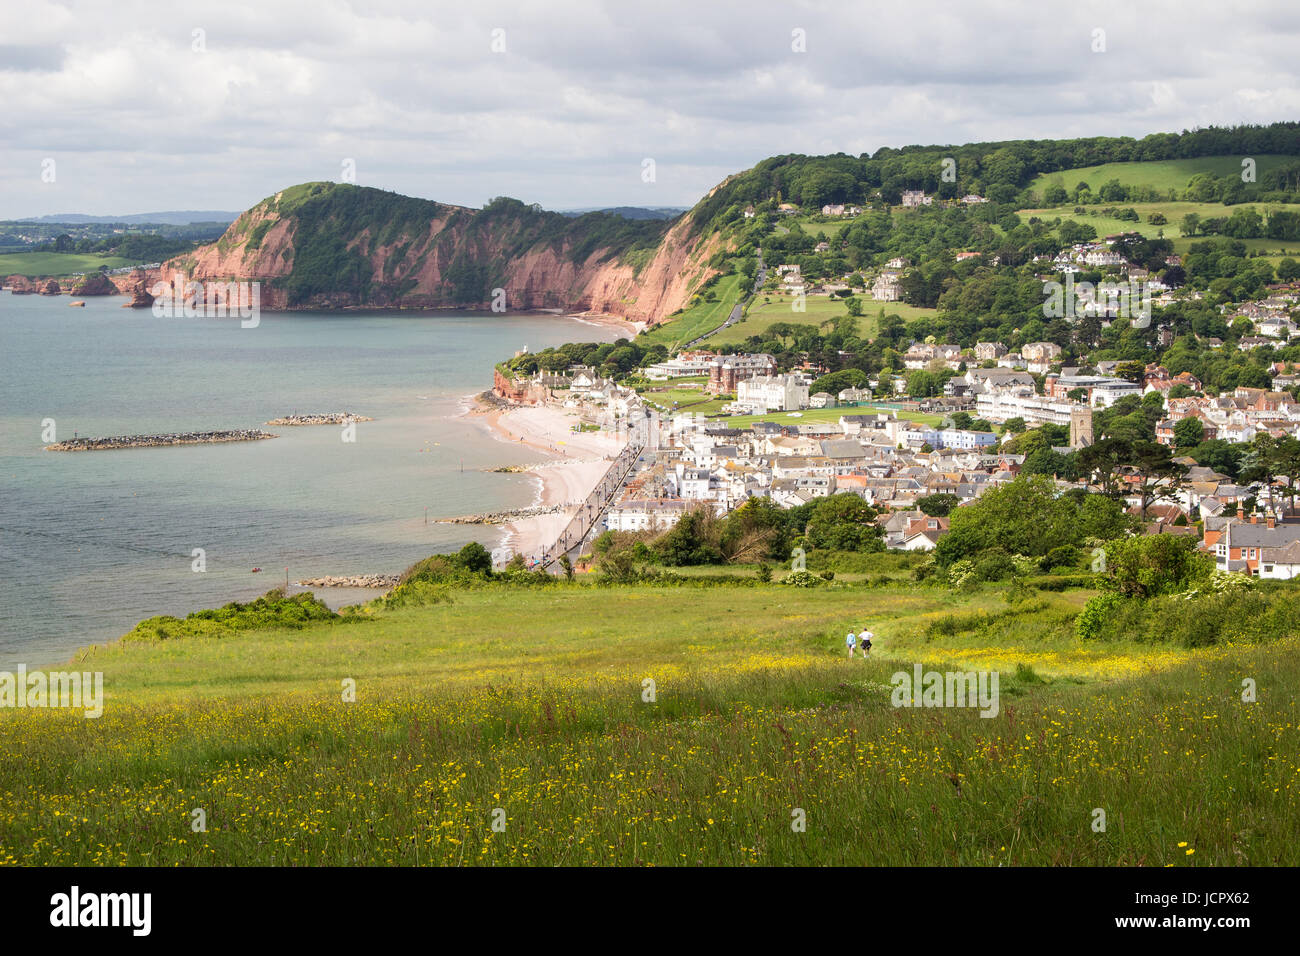 View of Sidmouth in Devon from cliffs with wildflower meadow in foreground - Stock Image